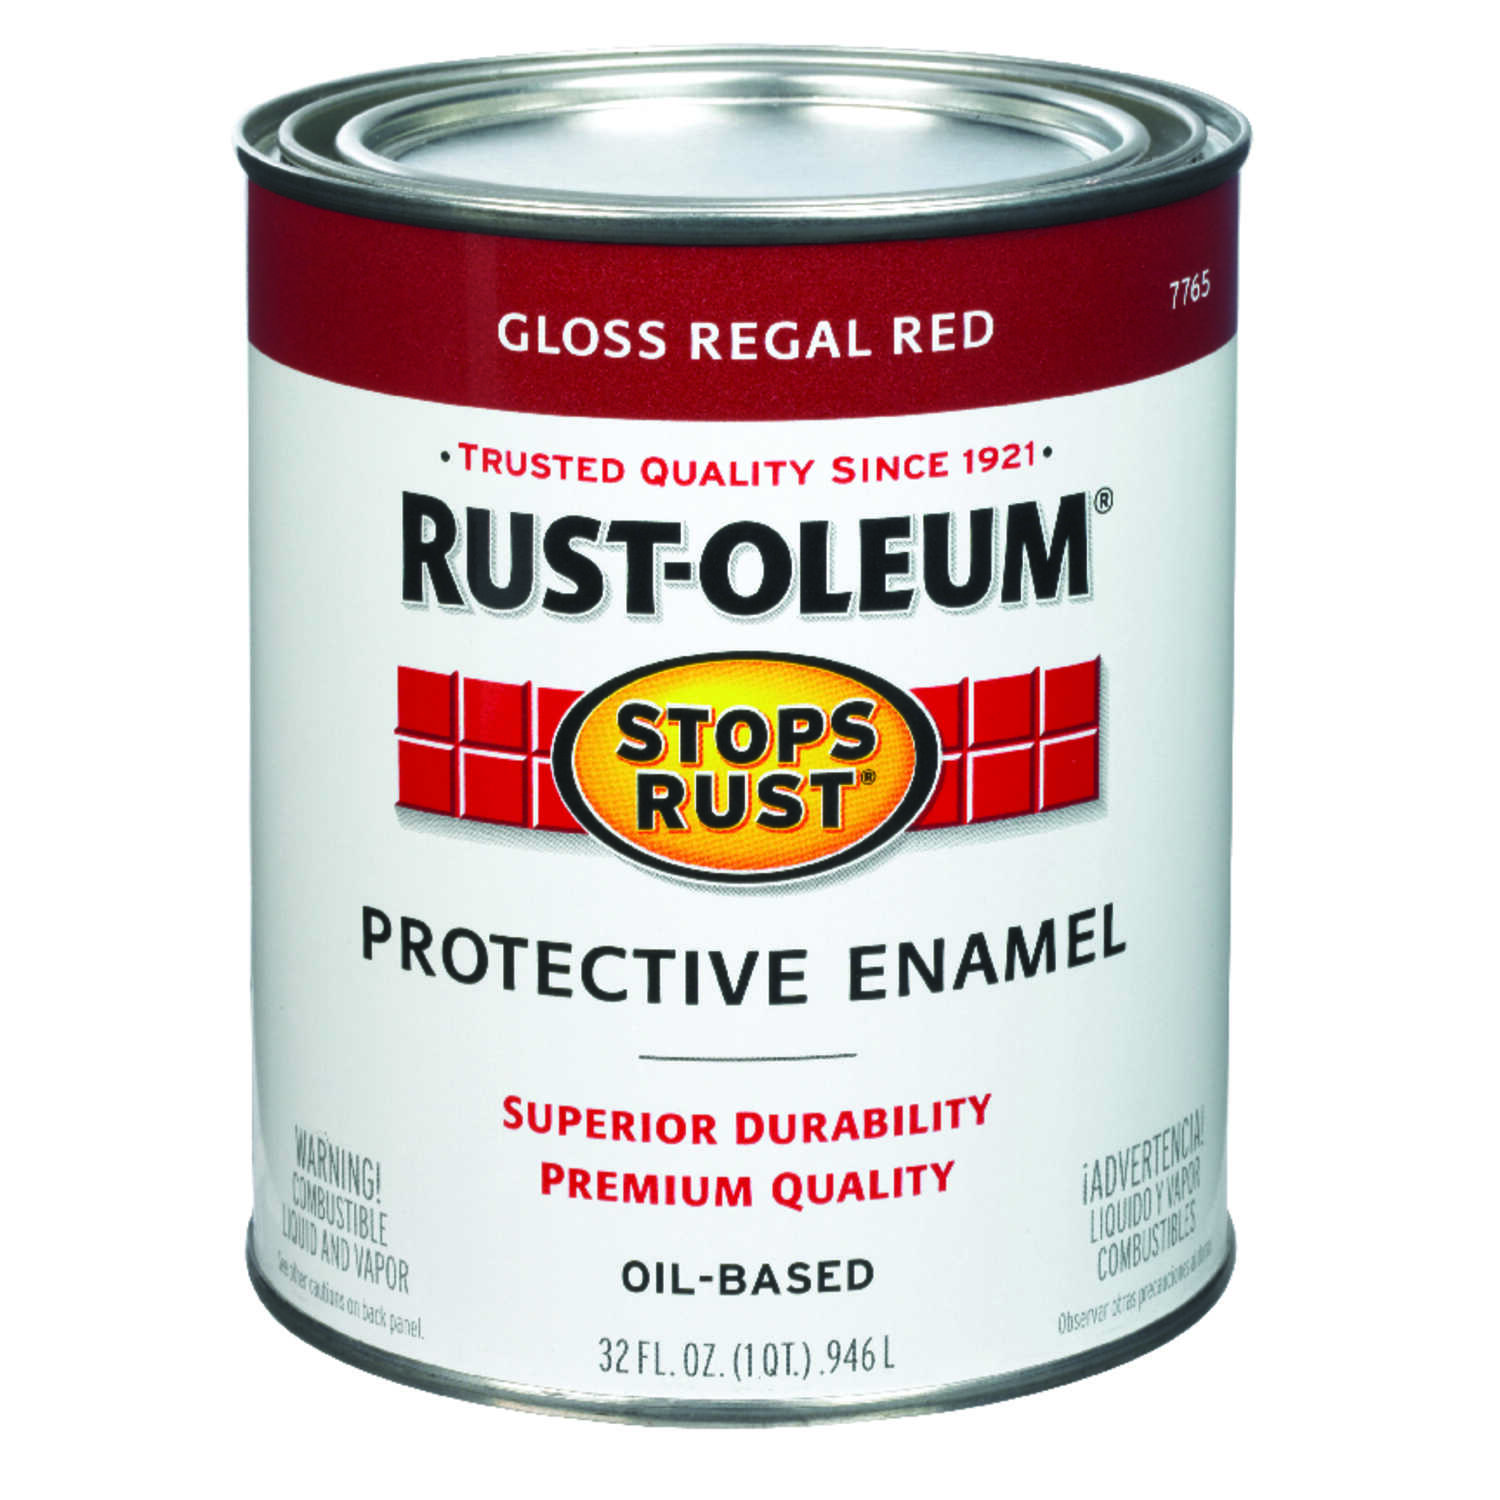 Rust-Oleum  Stops Rust  Gloss  Regal Red  Protective Enamel  1 qt. 485 g/L